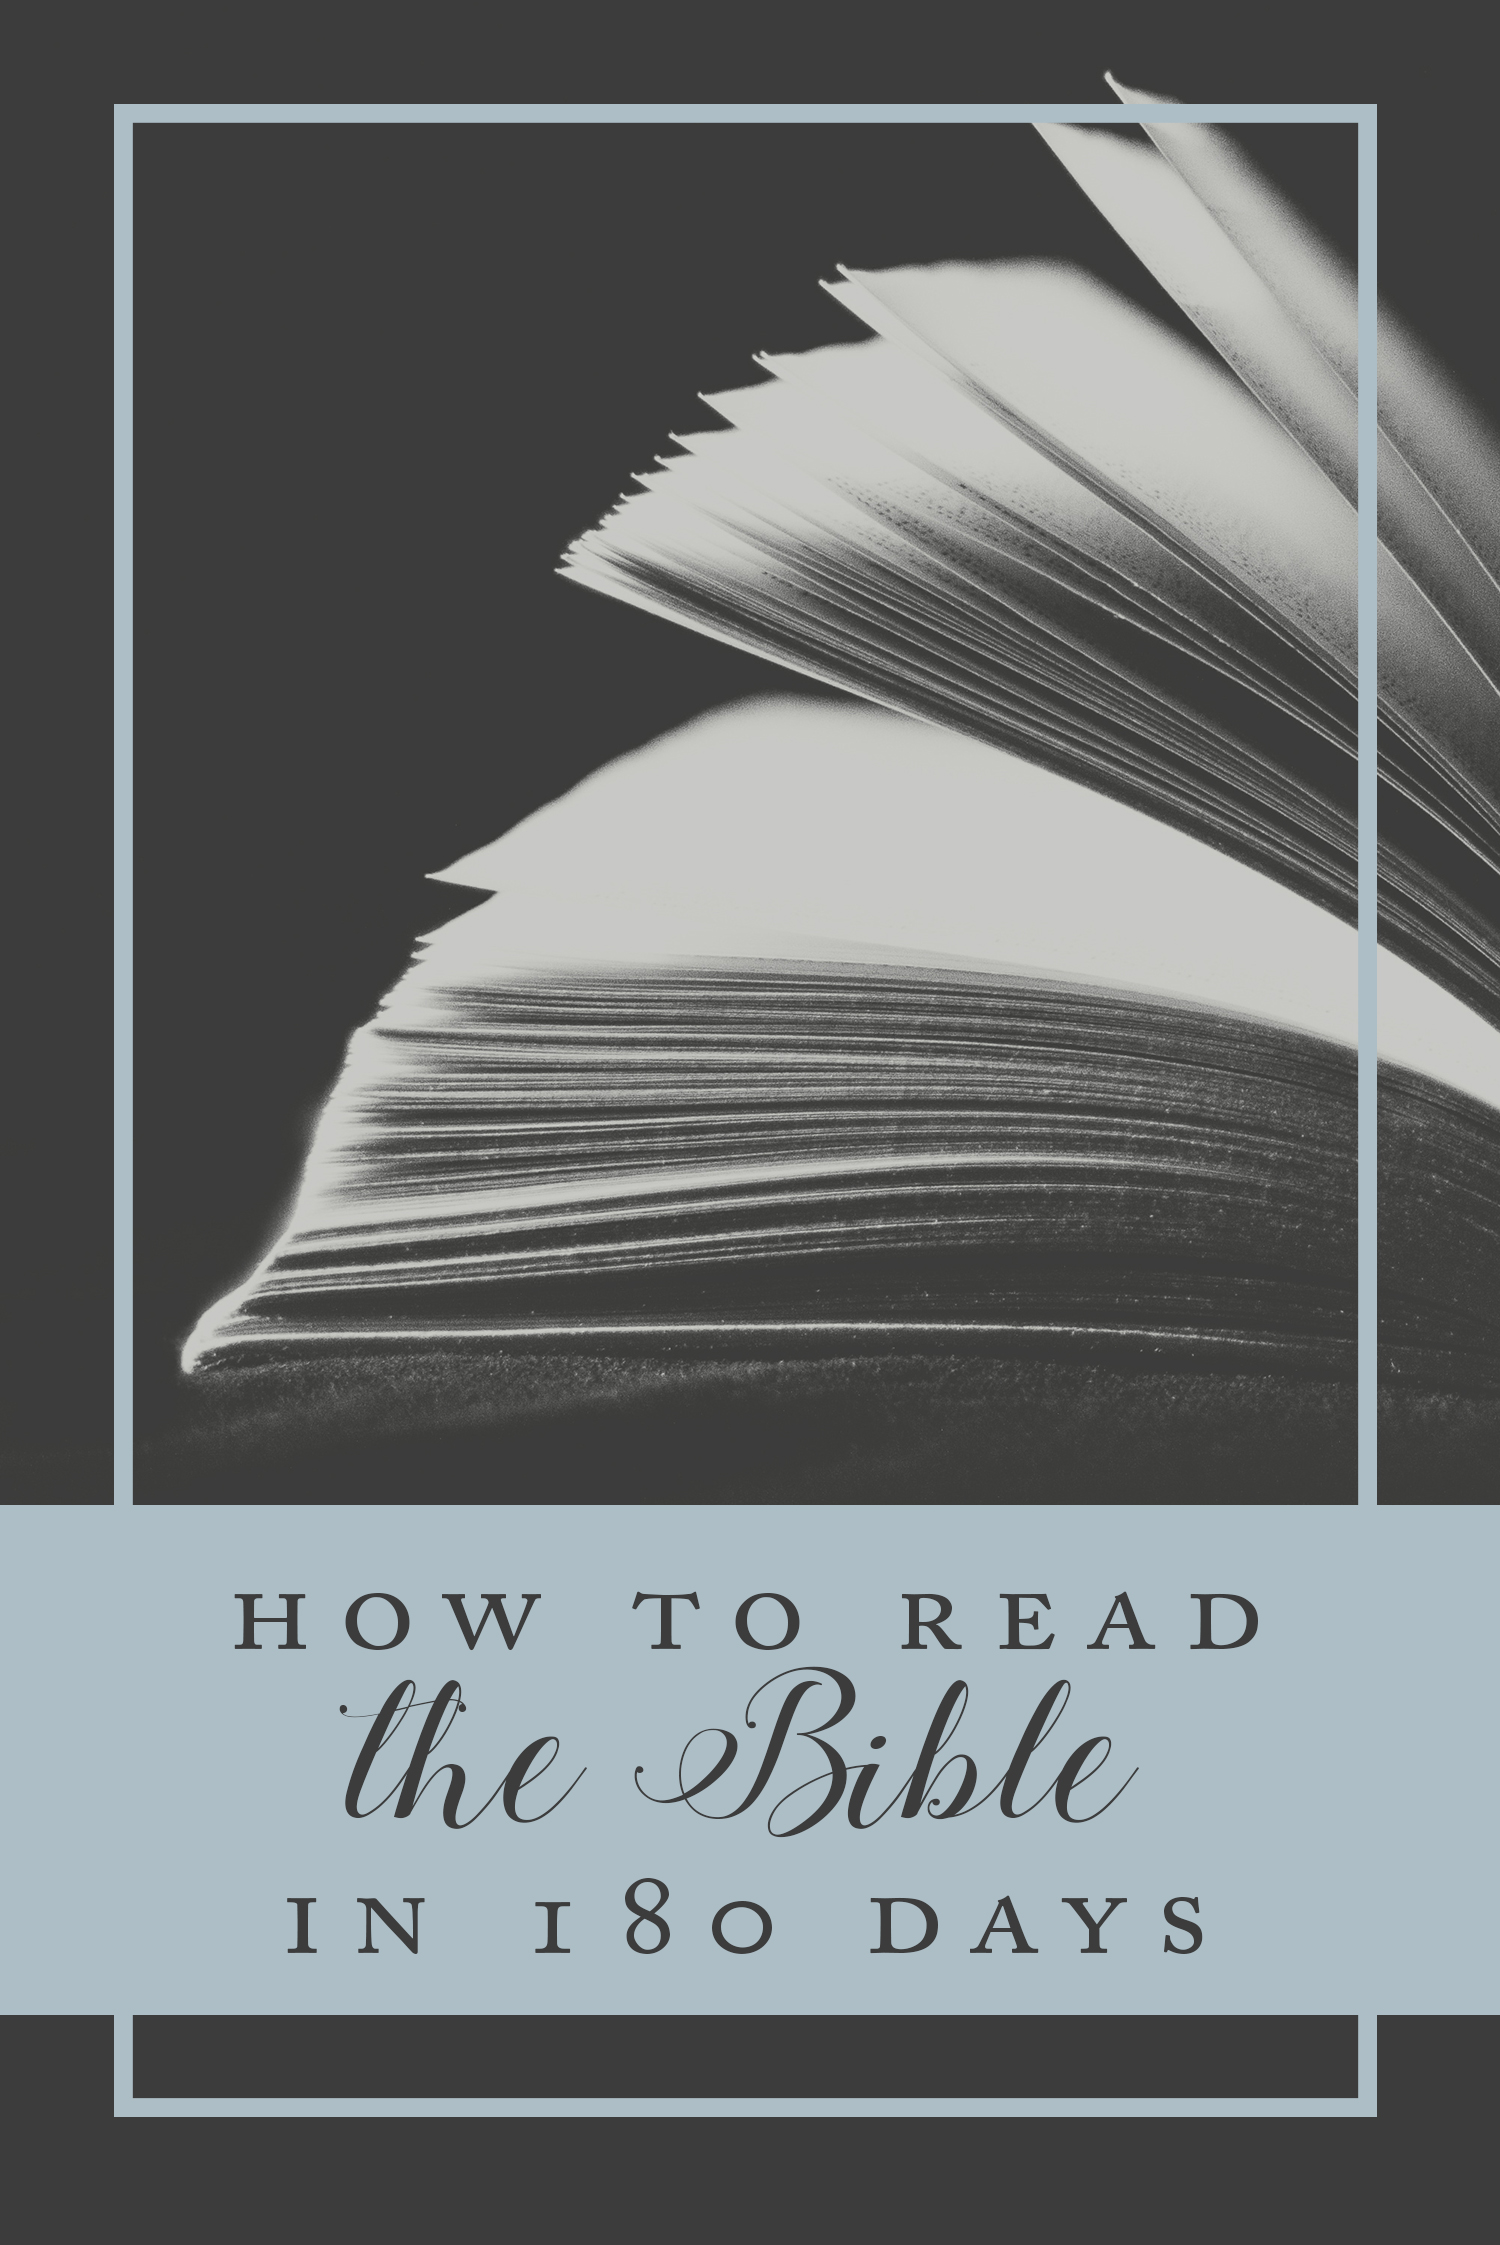 how-to-read-the-bible-in-180-days-2.jpg